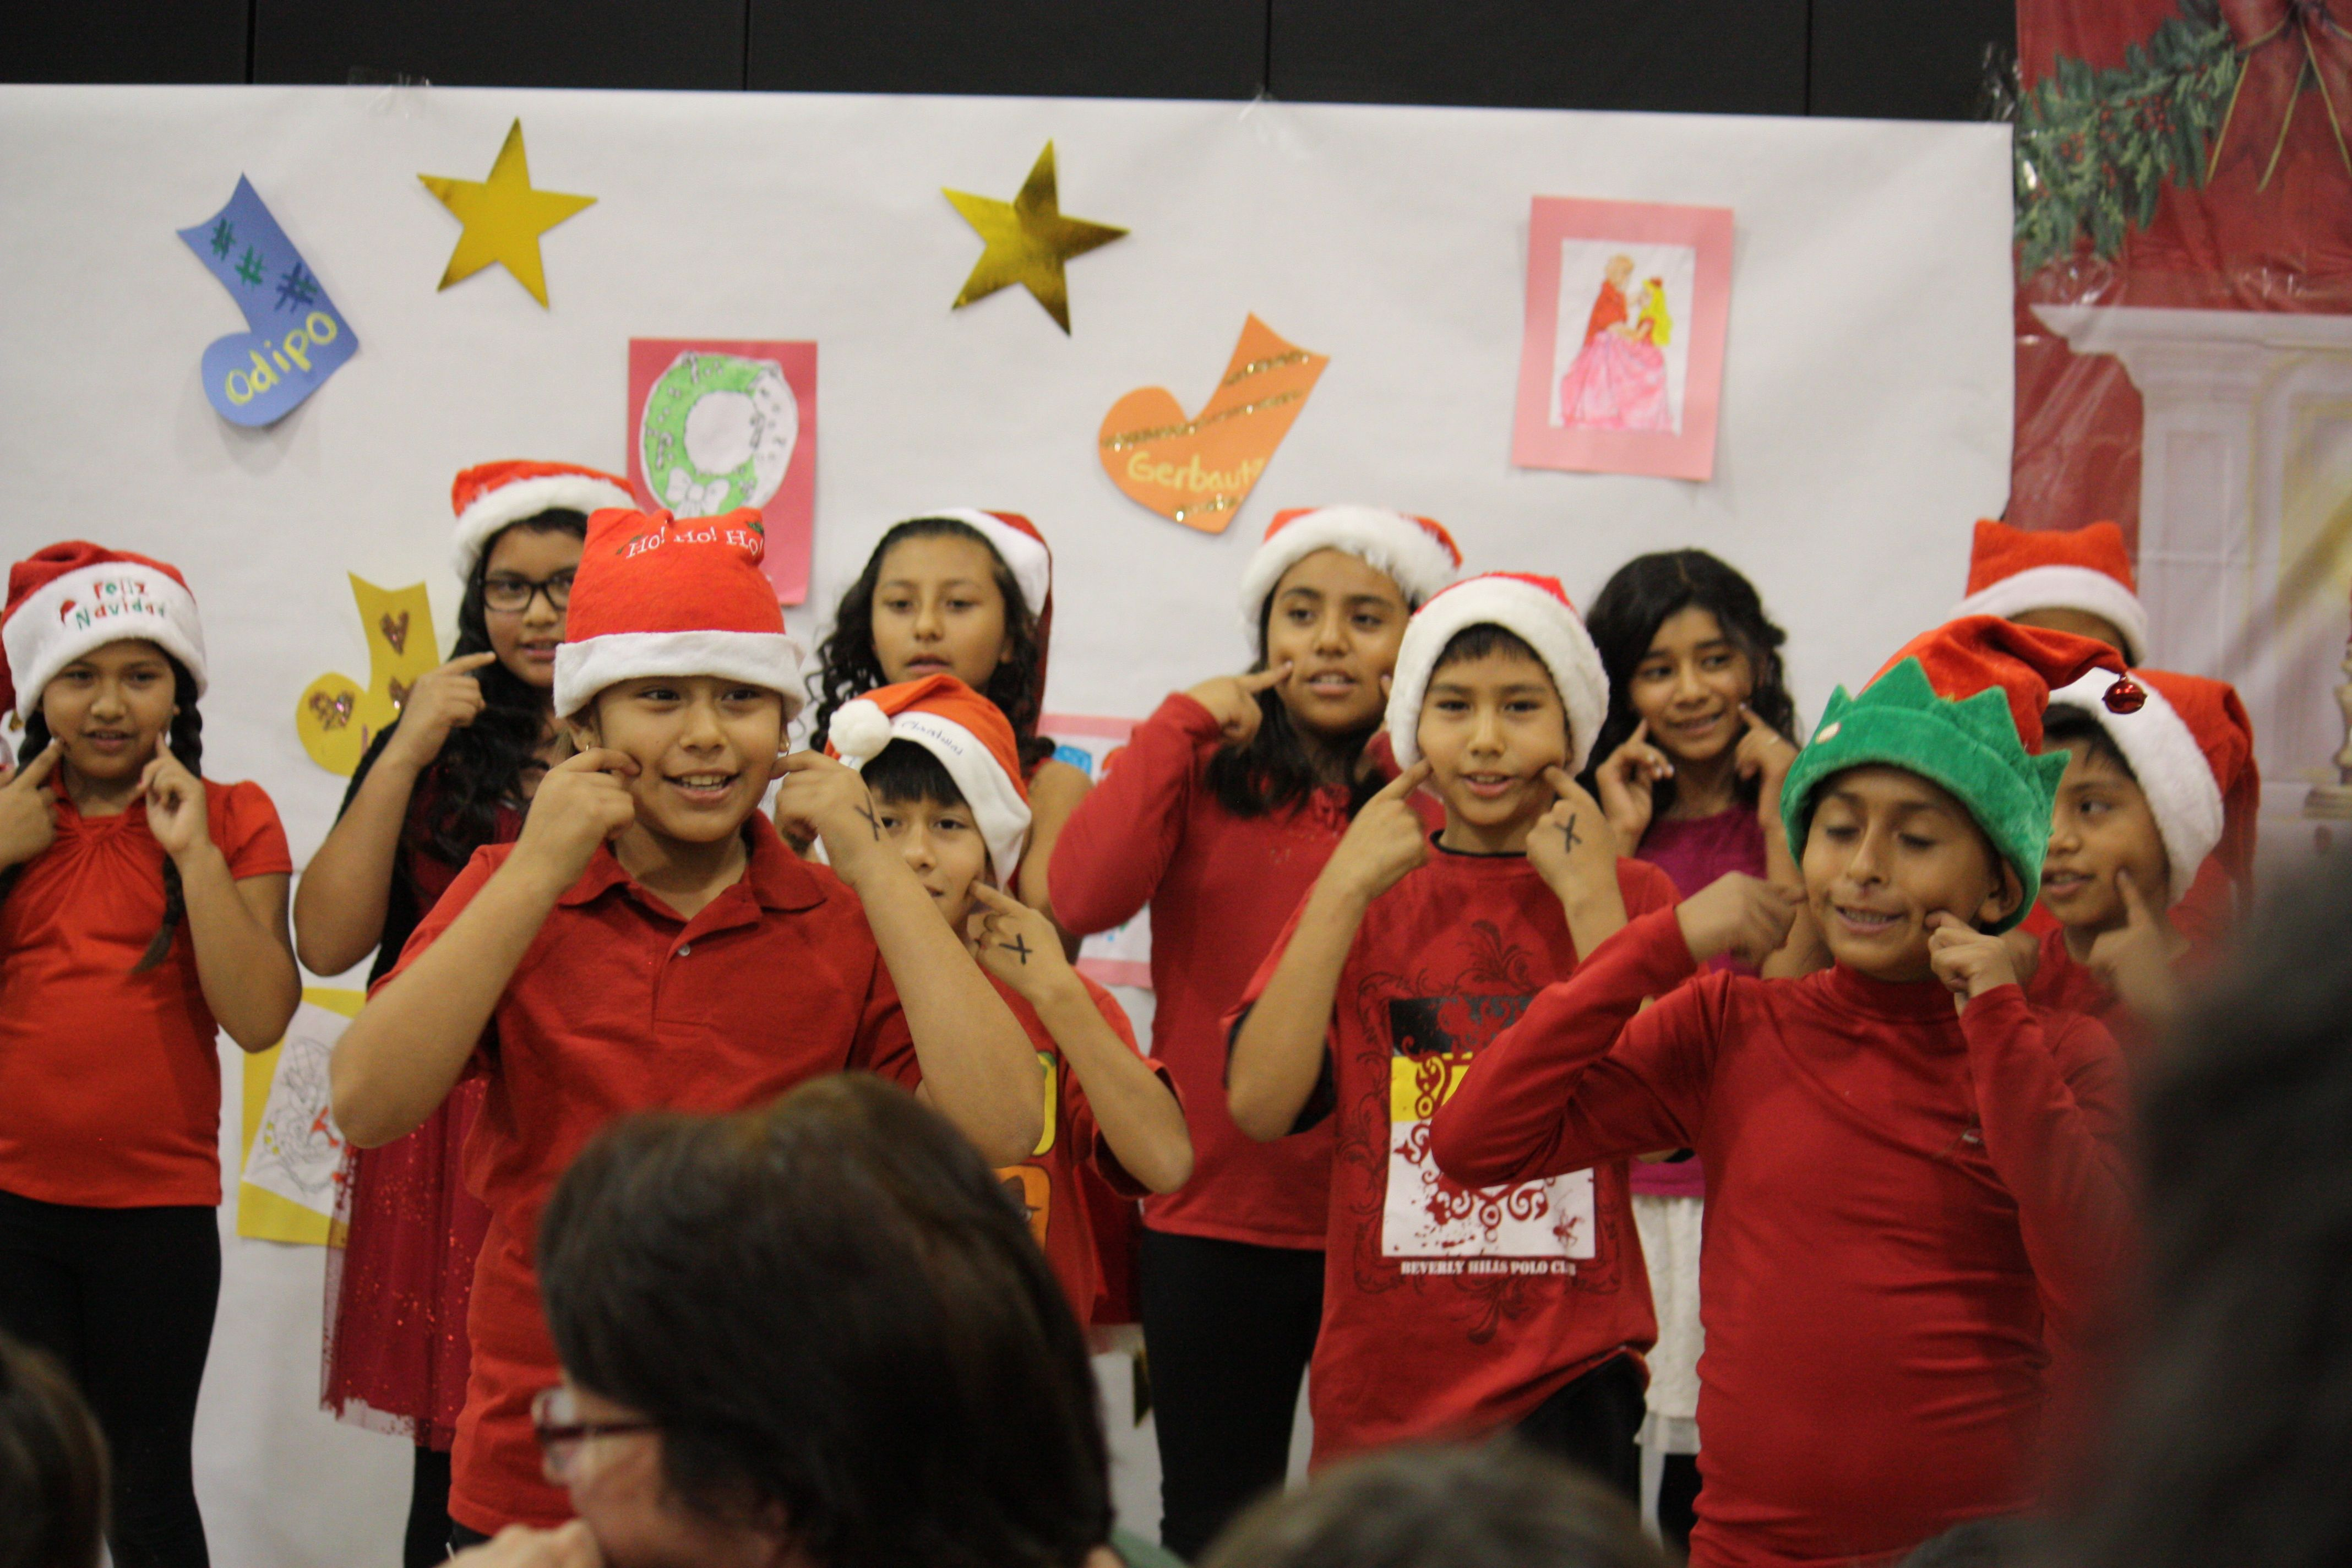 The Fullerton Family YMCA Dinner with Santa in December 2013 #santa #ymcaoc #ymcaocfn #Fullerton #ymca #orangecounty #fitness #community #california #gym #workout #getfitin2014